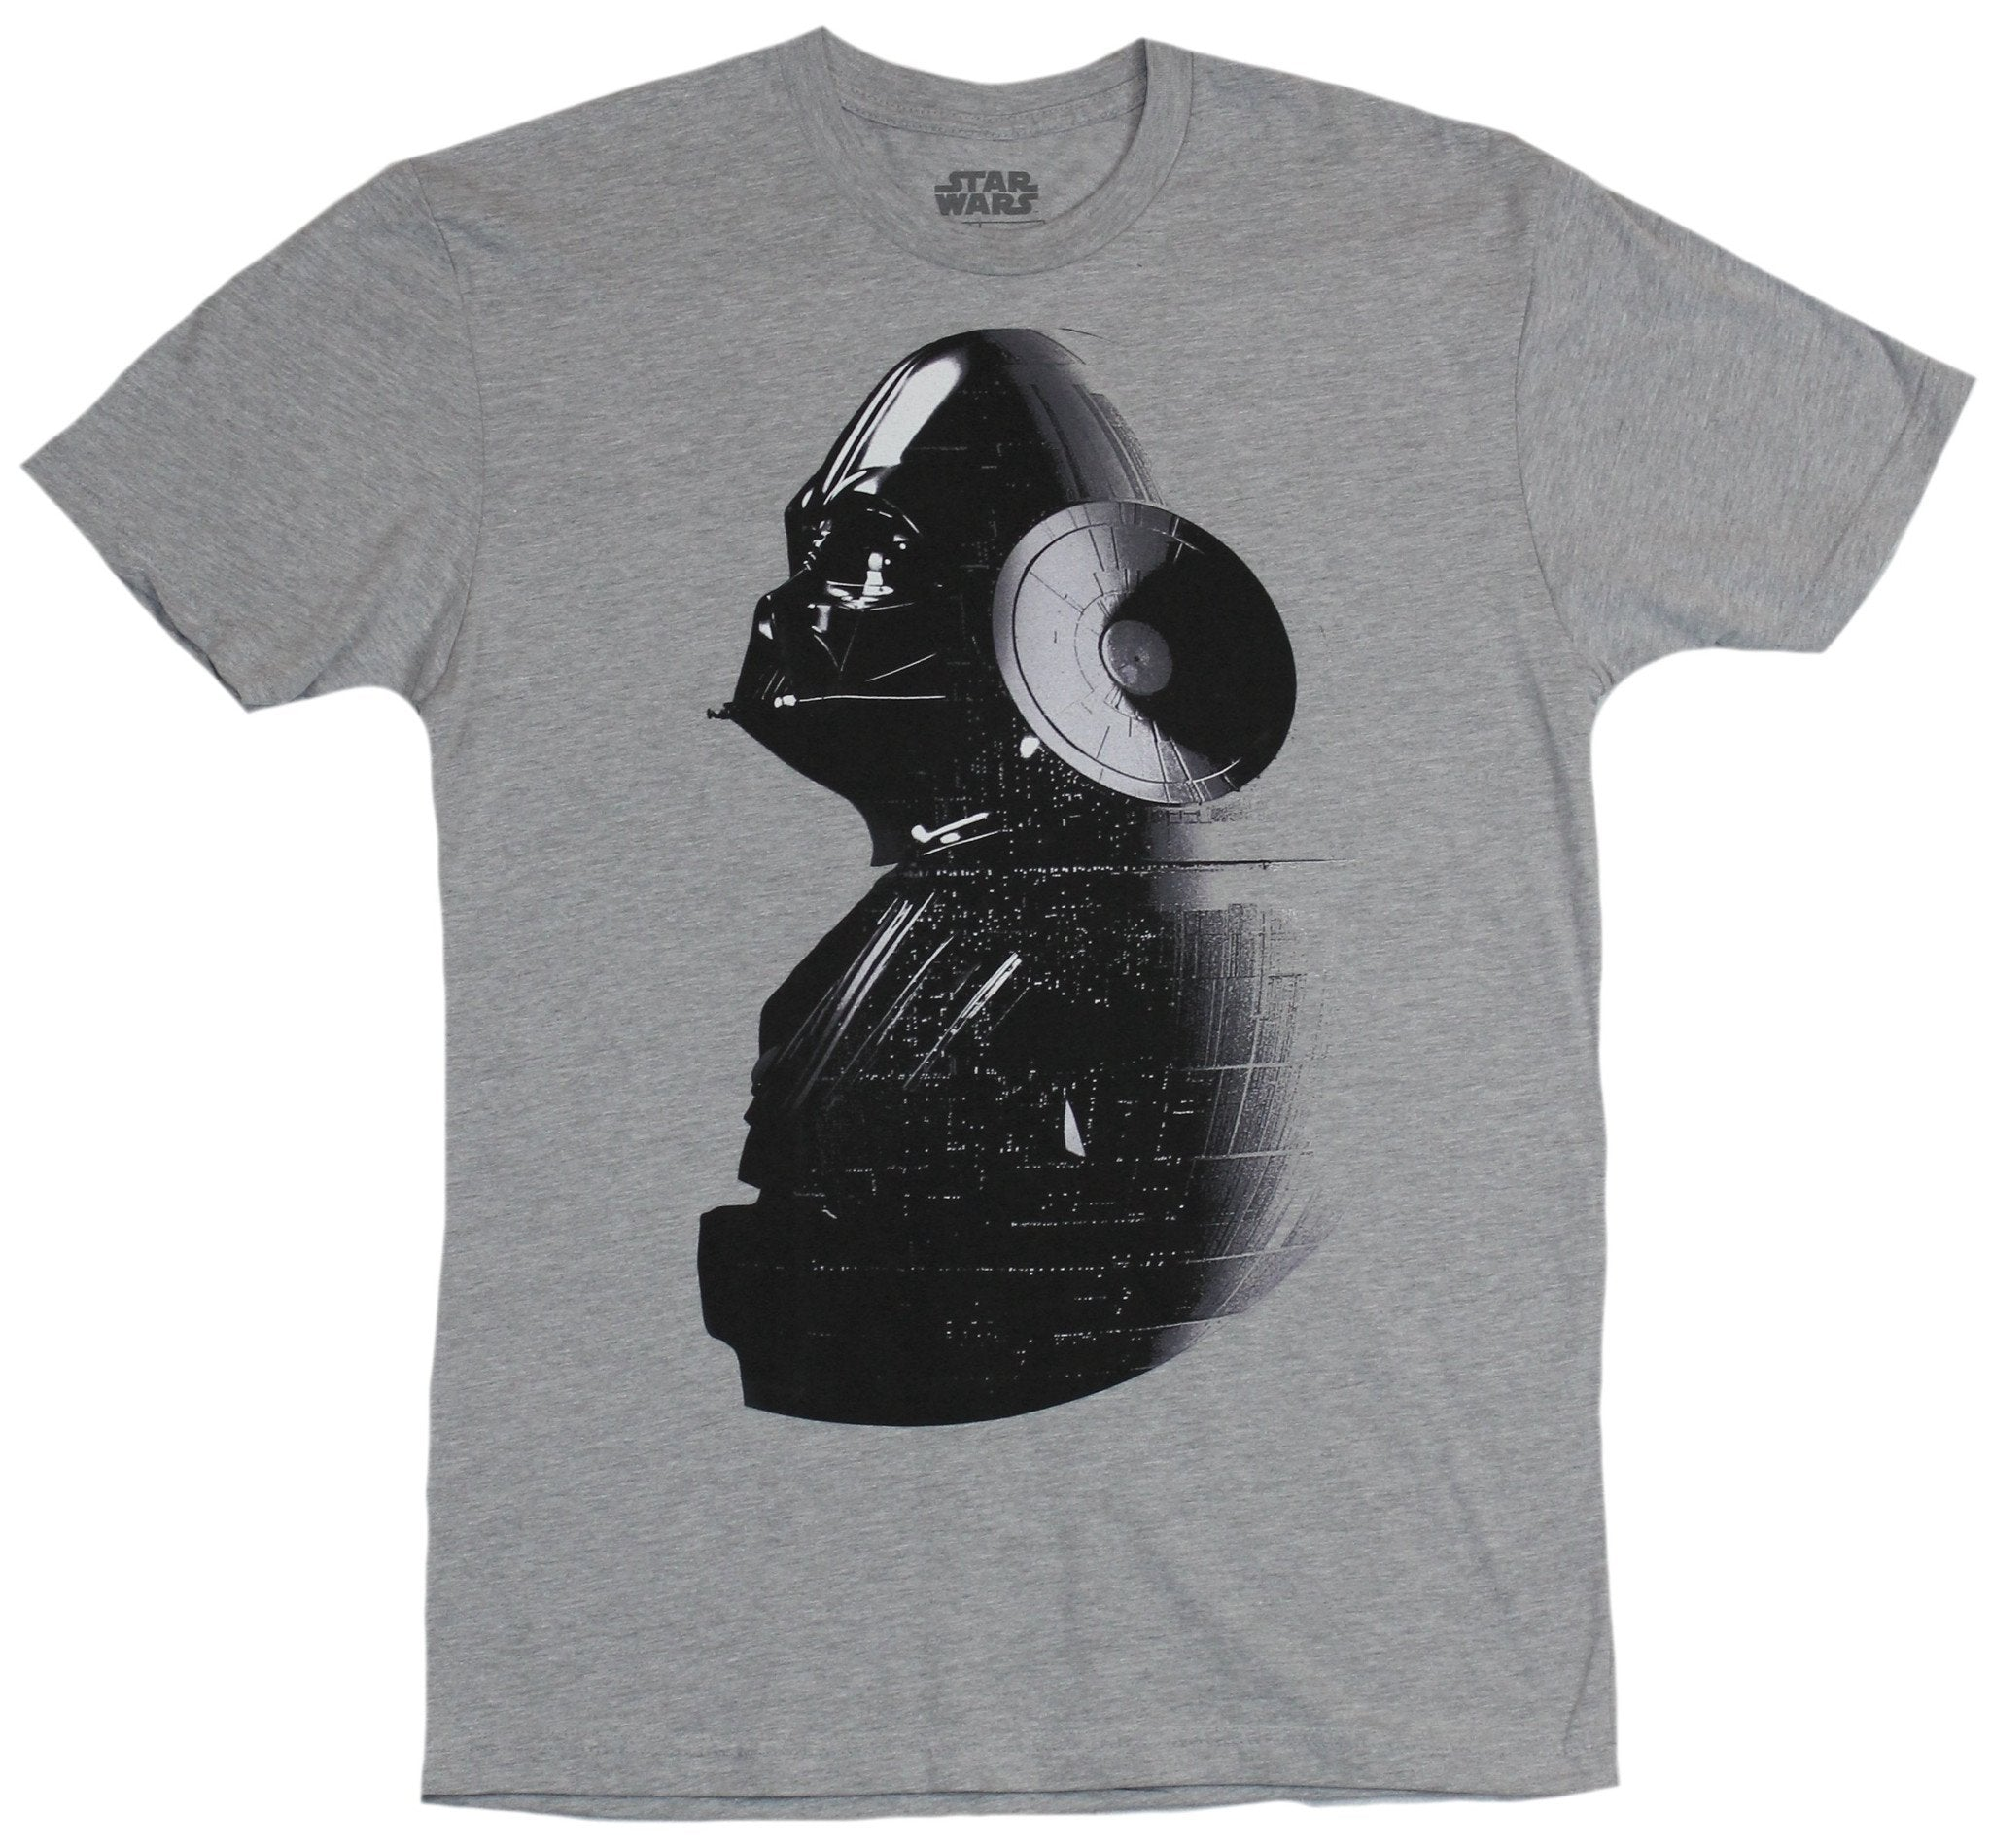 Star Wars Mens T-Shirt - Darth Vader Under Death Star Image